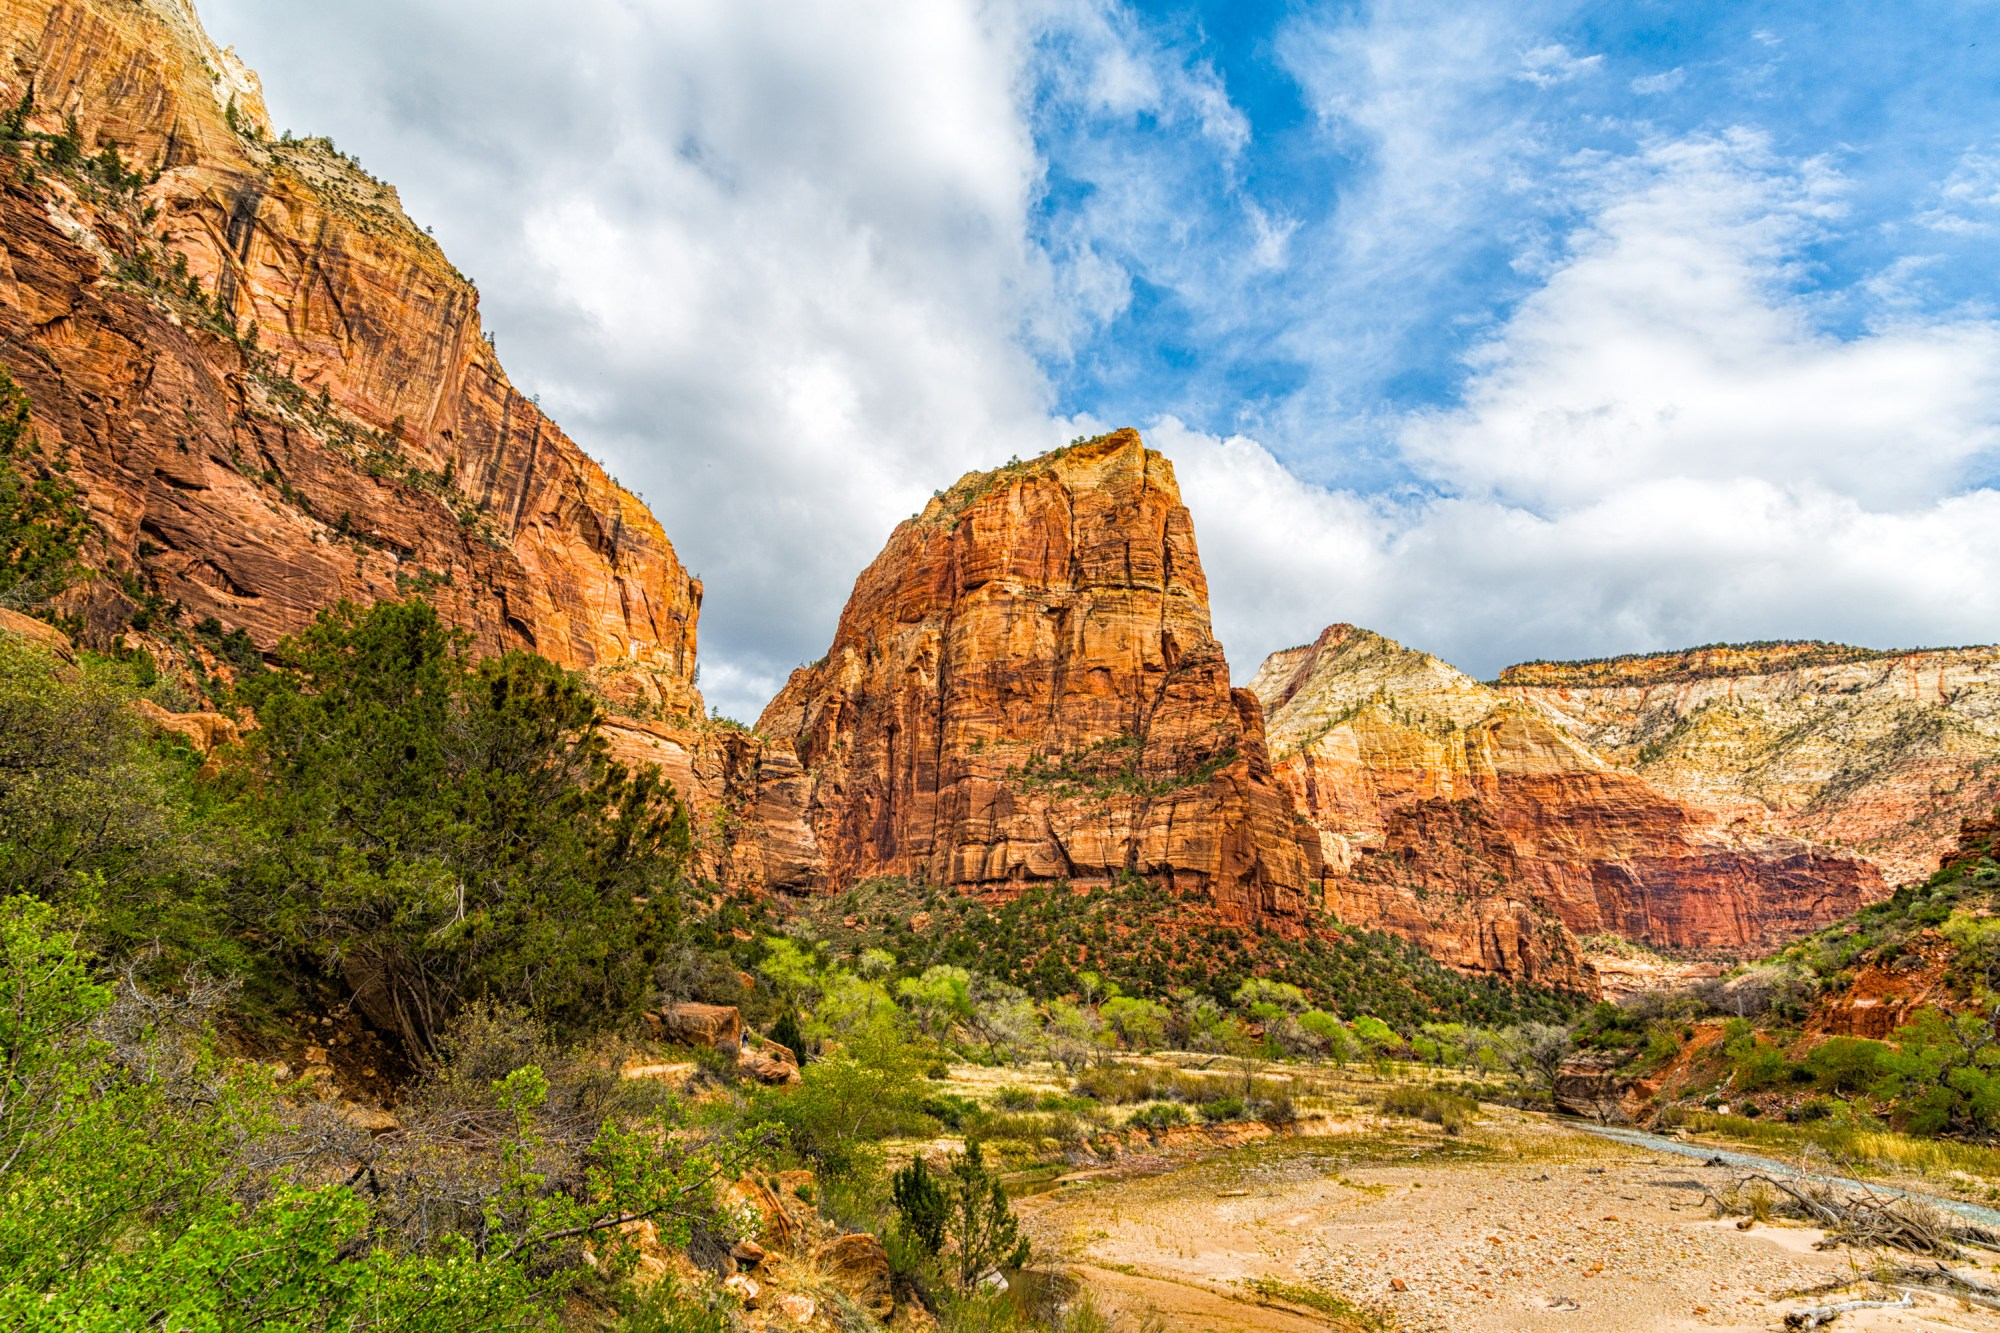 Angel's Landing – Zion National Park